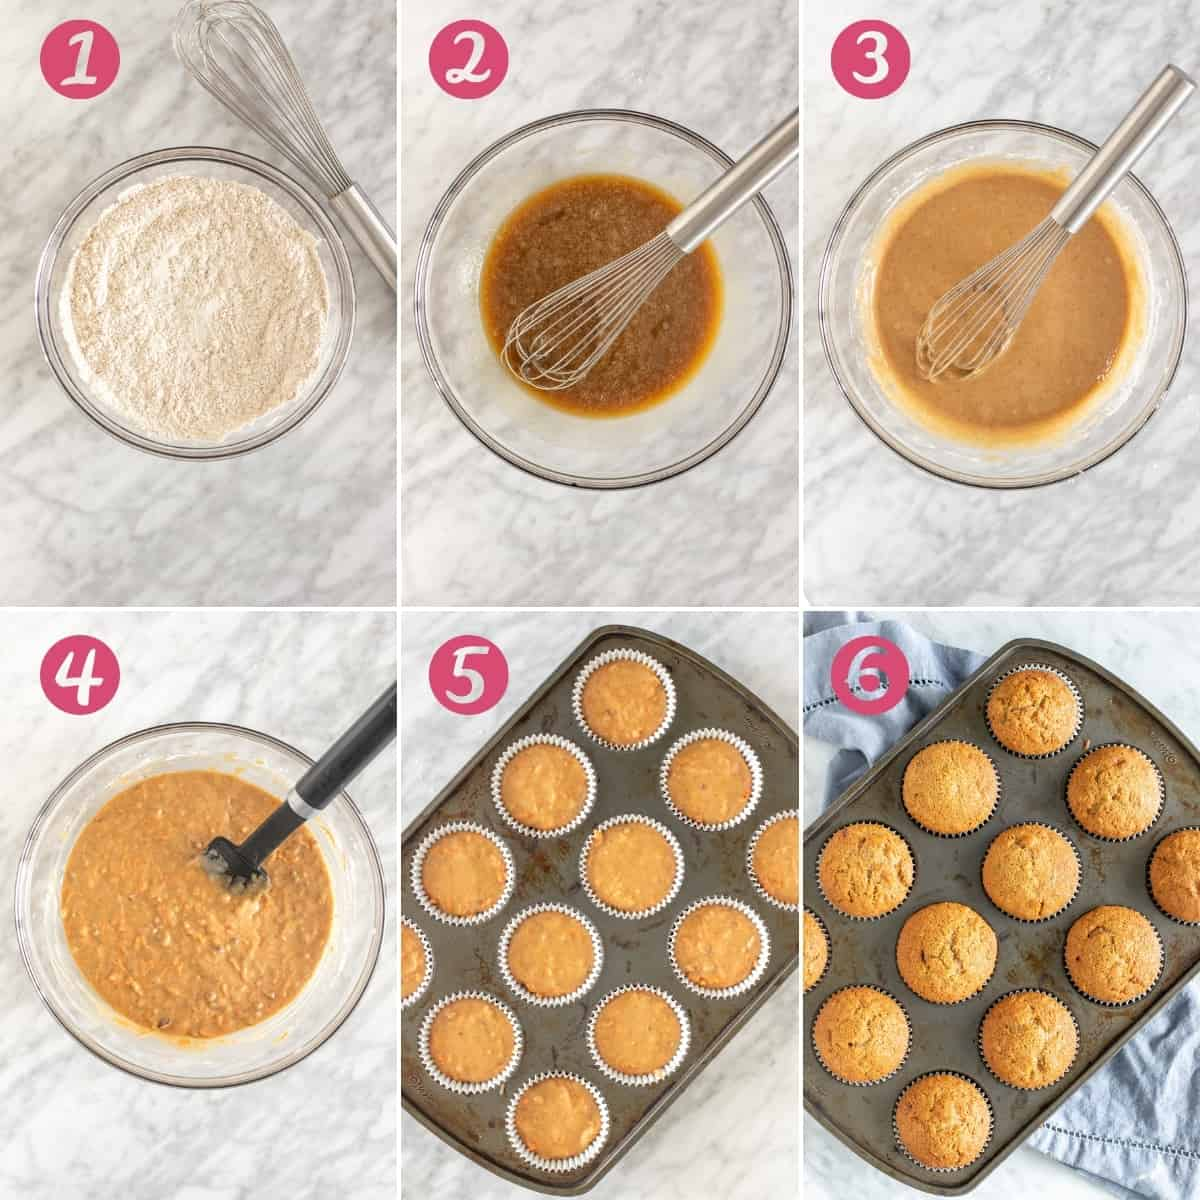 6 photos showing steps for making carrot muffins